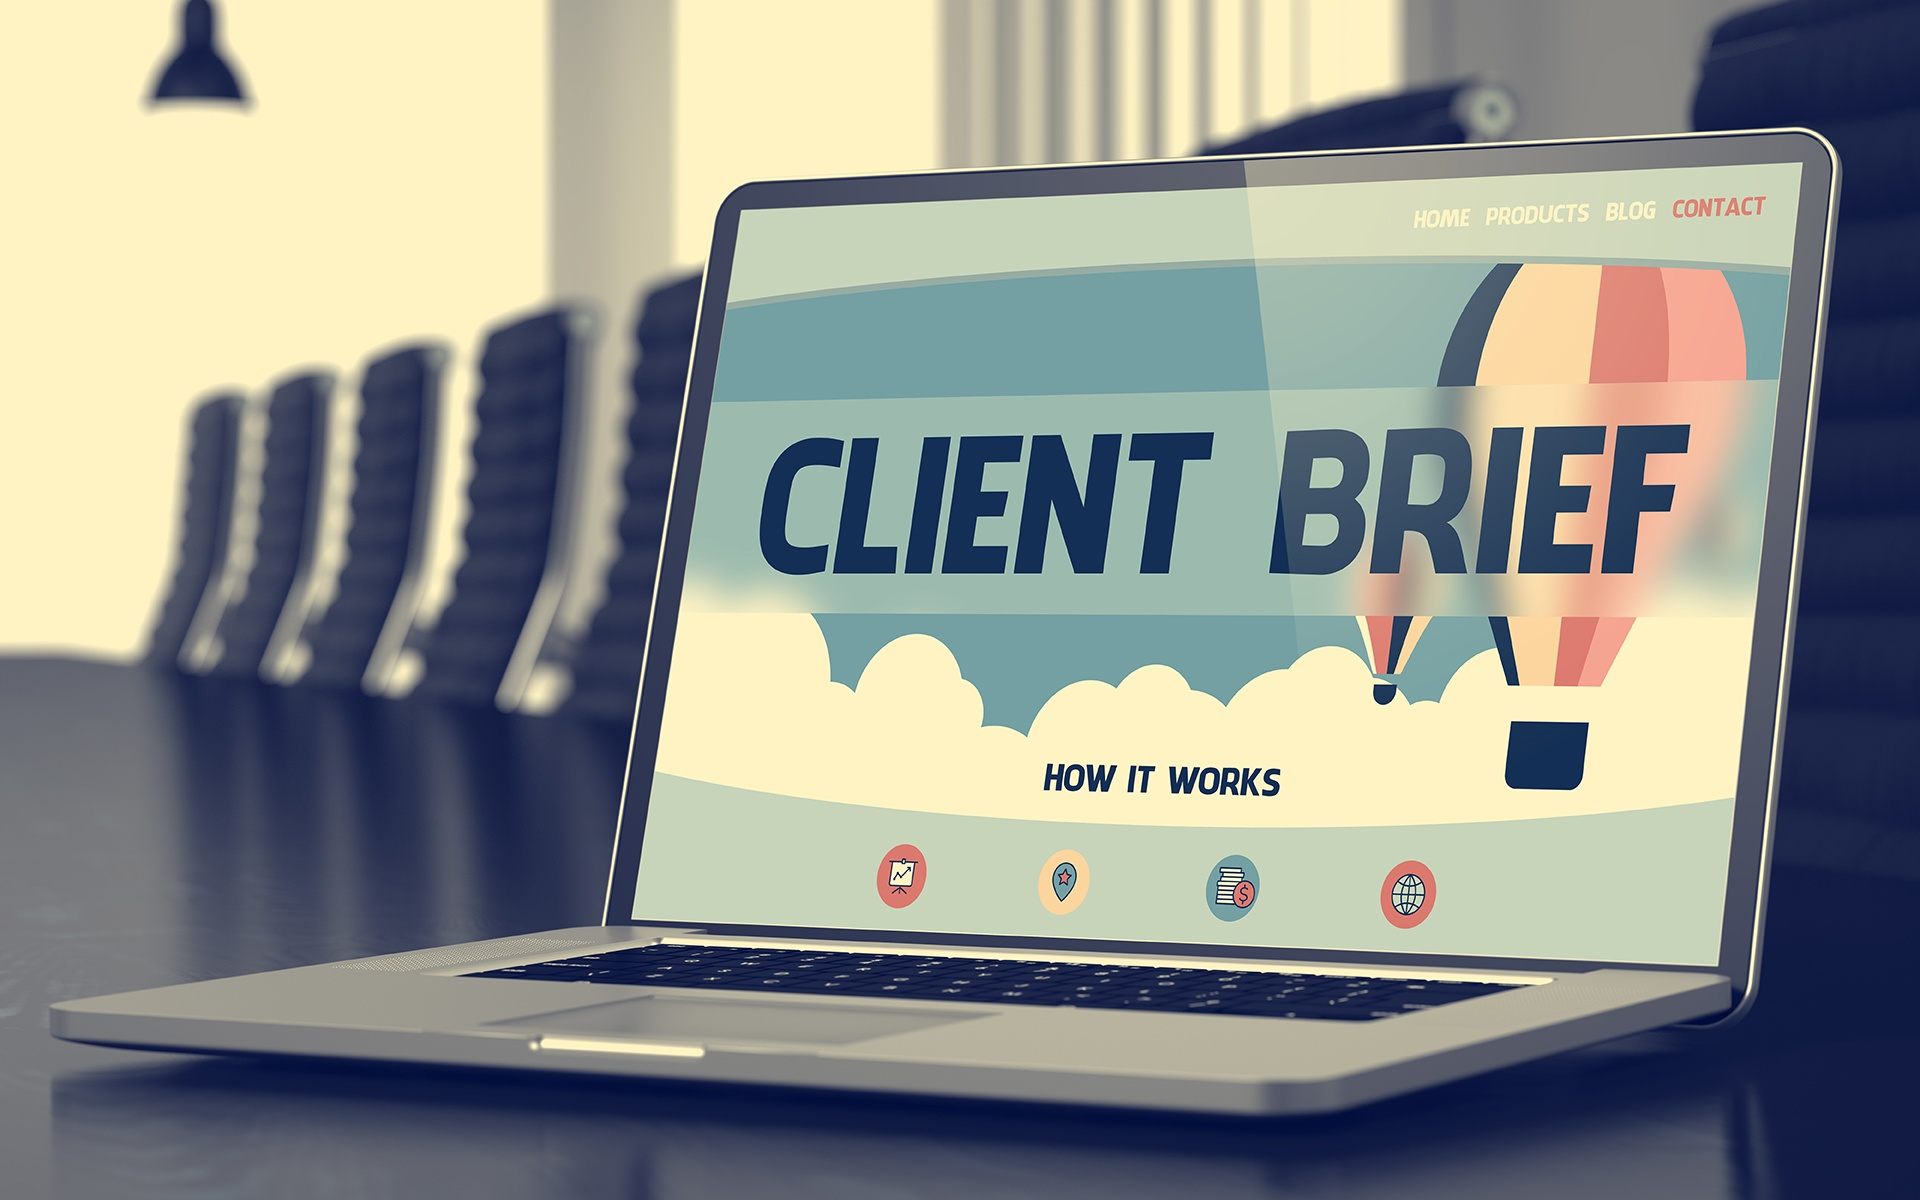 The Client Brief